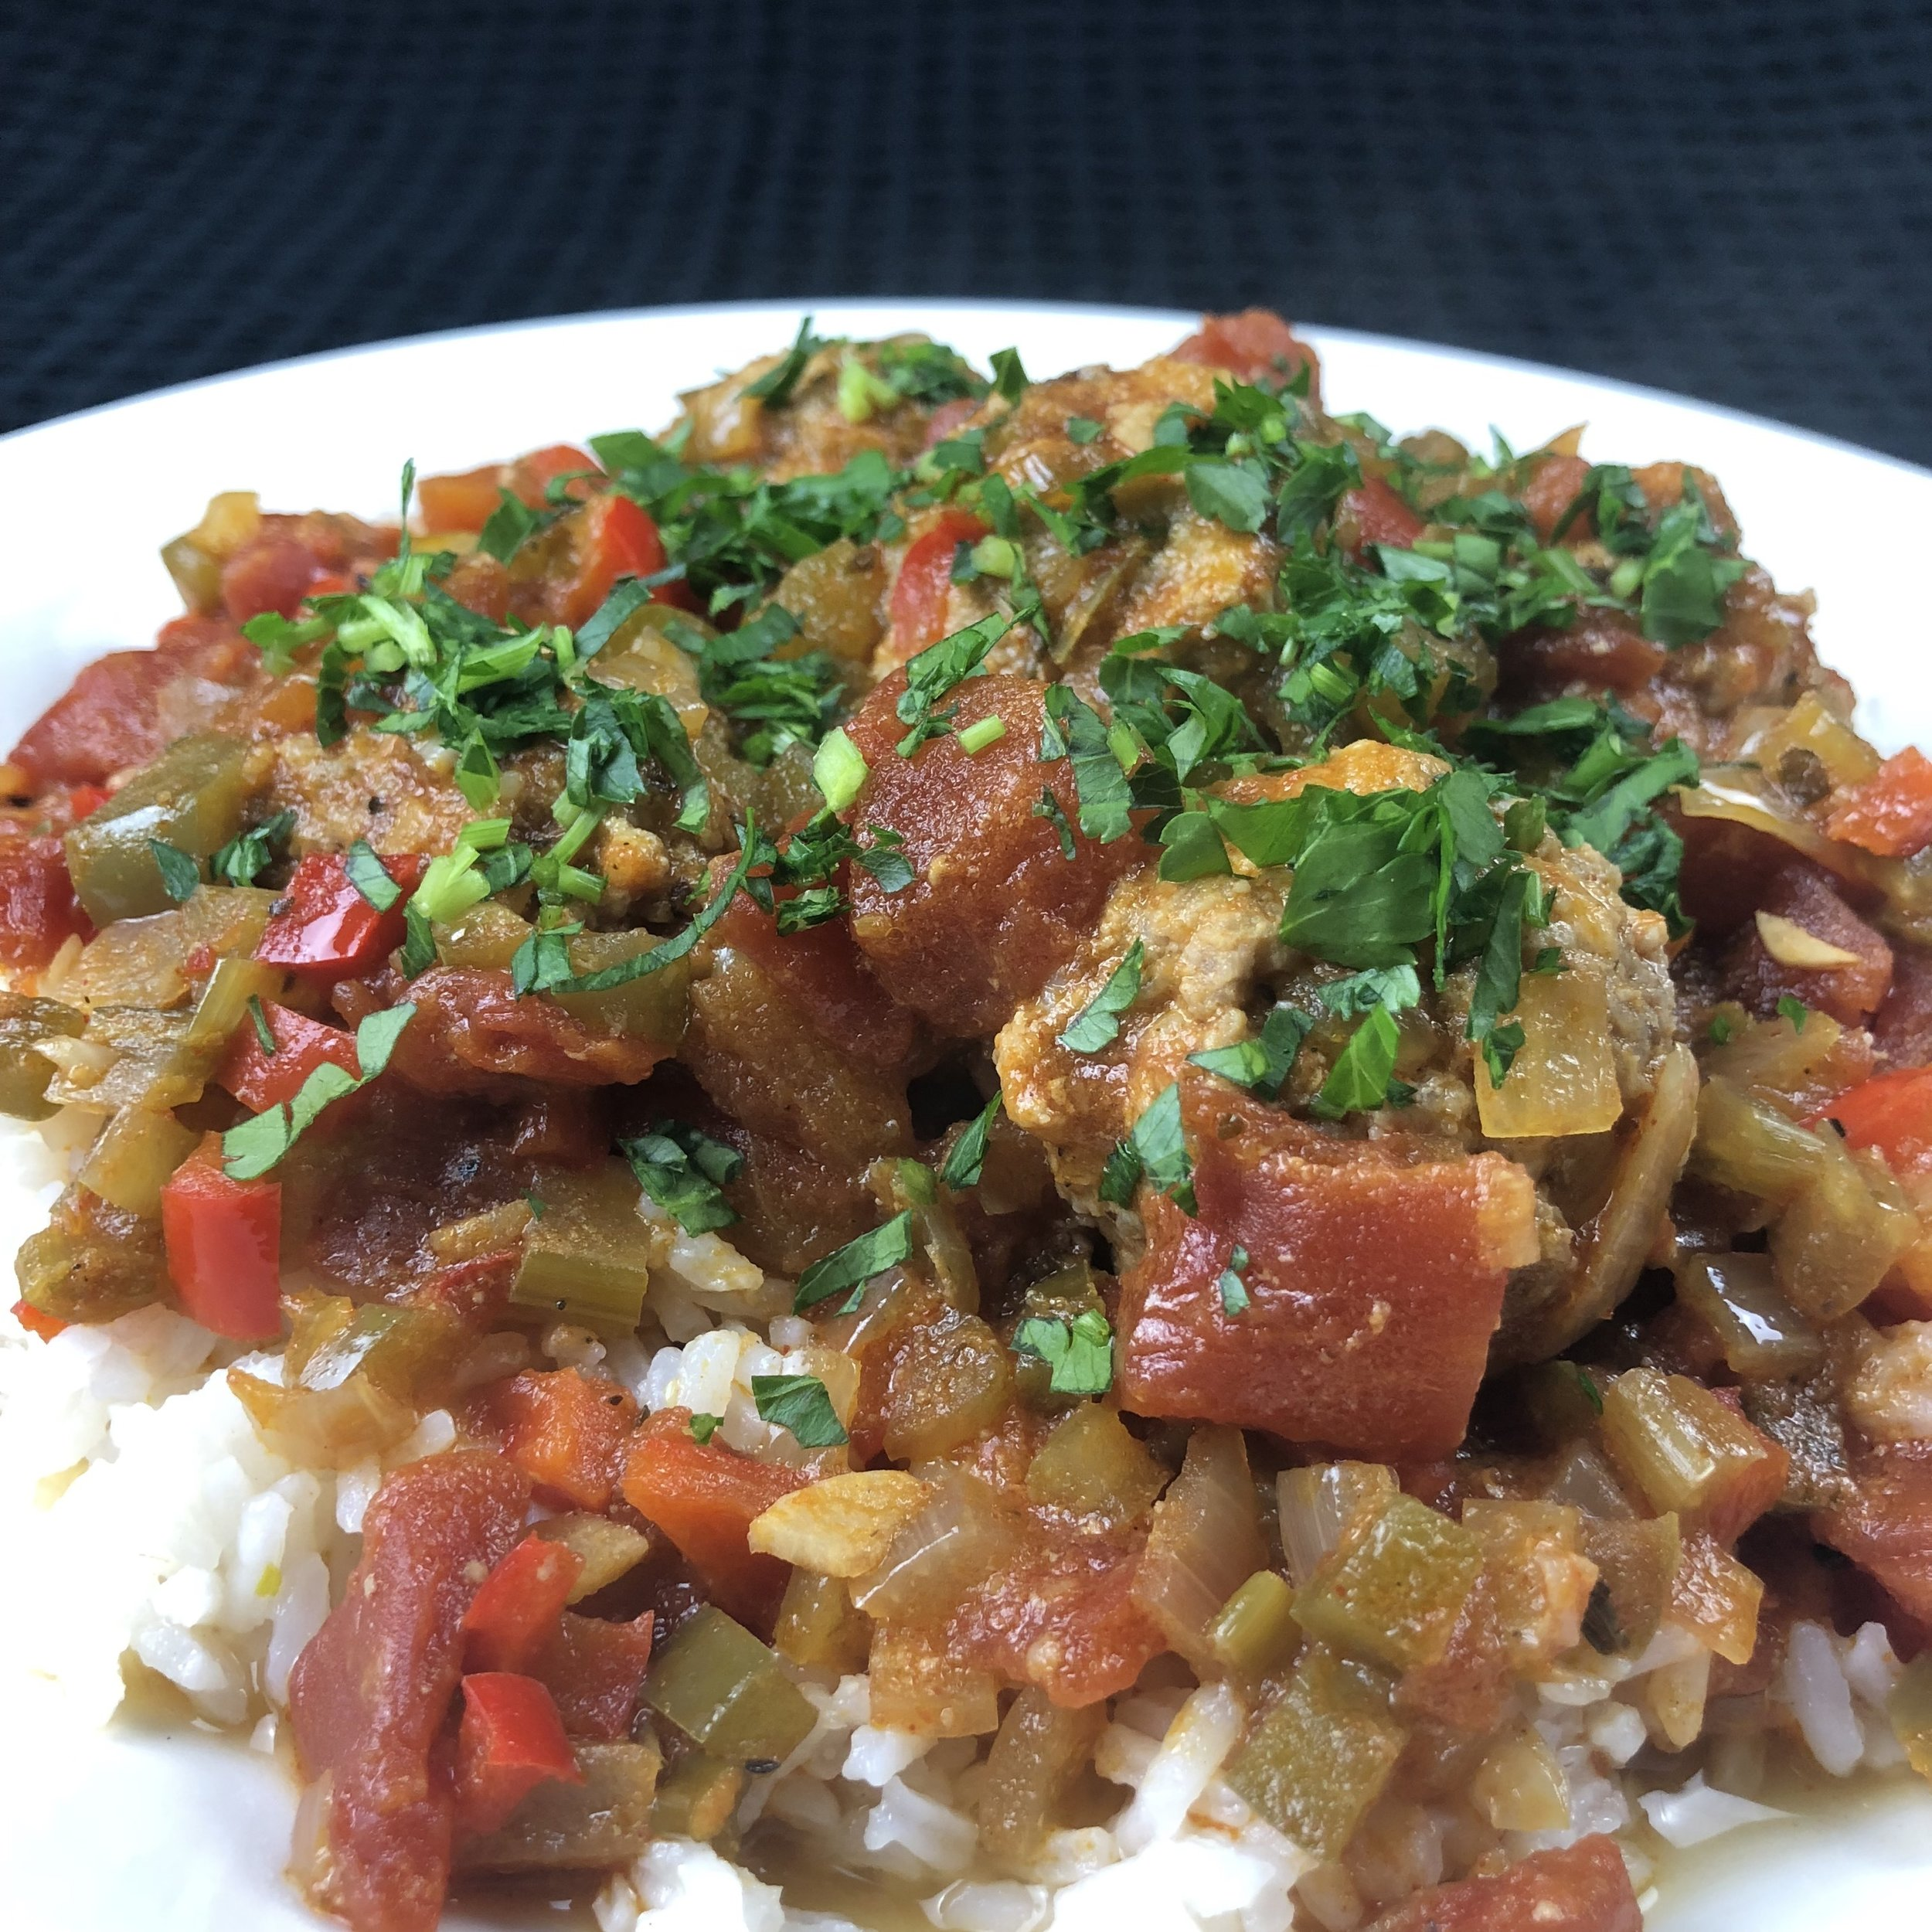 Sauce Piquant with Meatballs and Rice